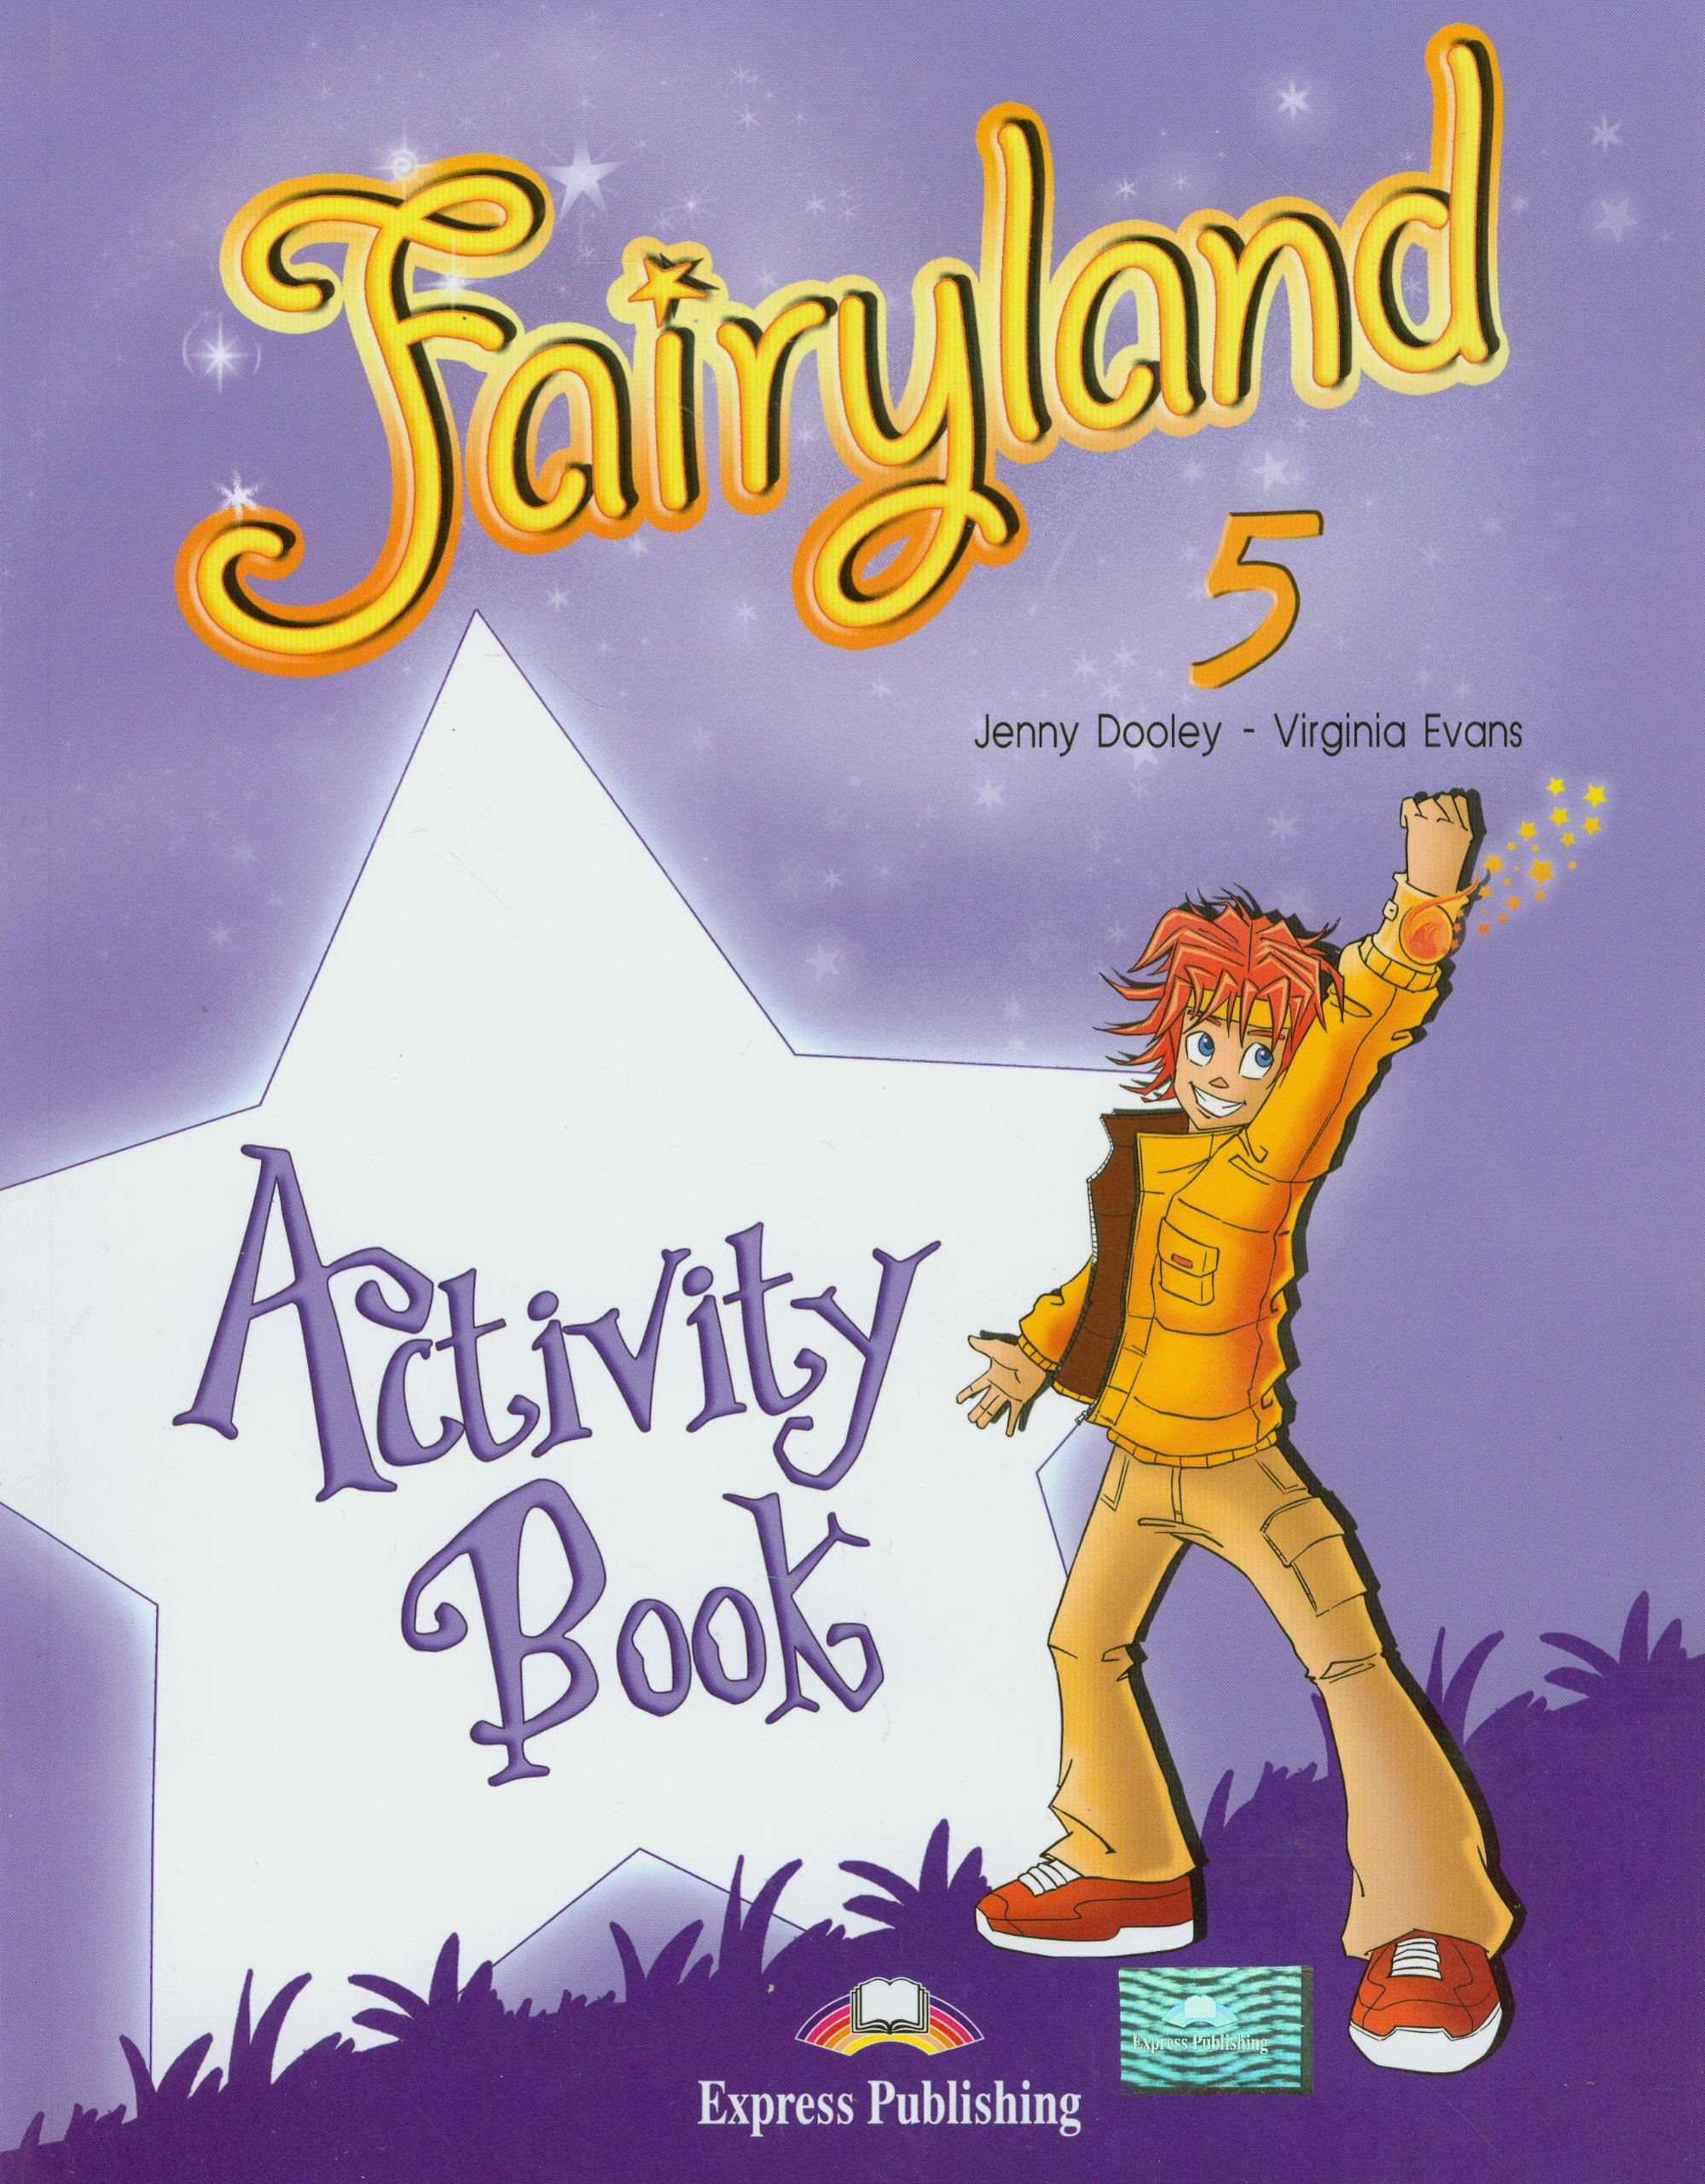 FAIRYLAND 5 Activity Book